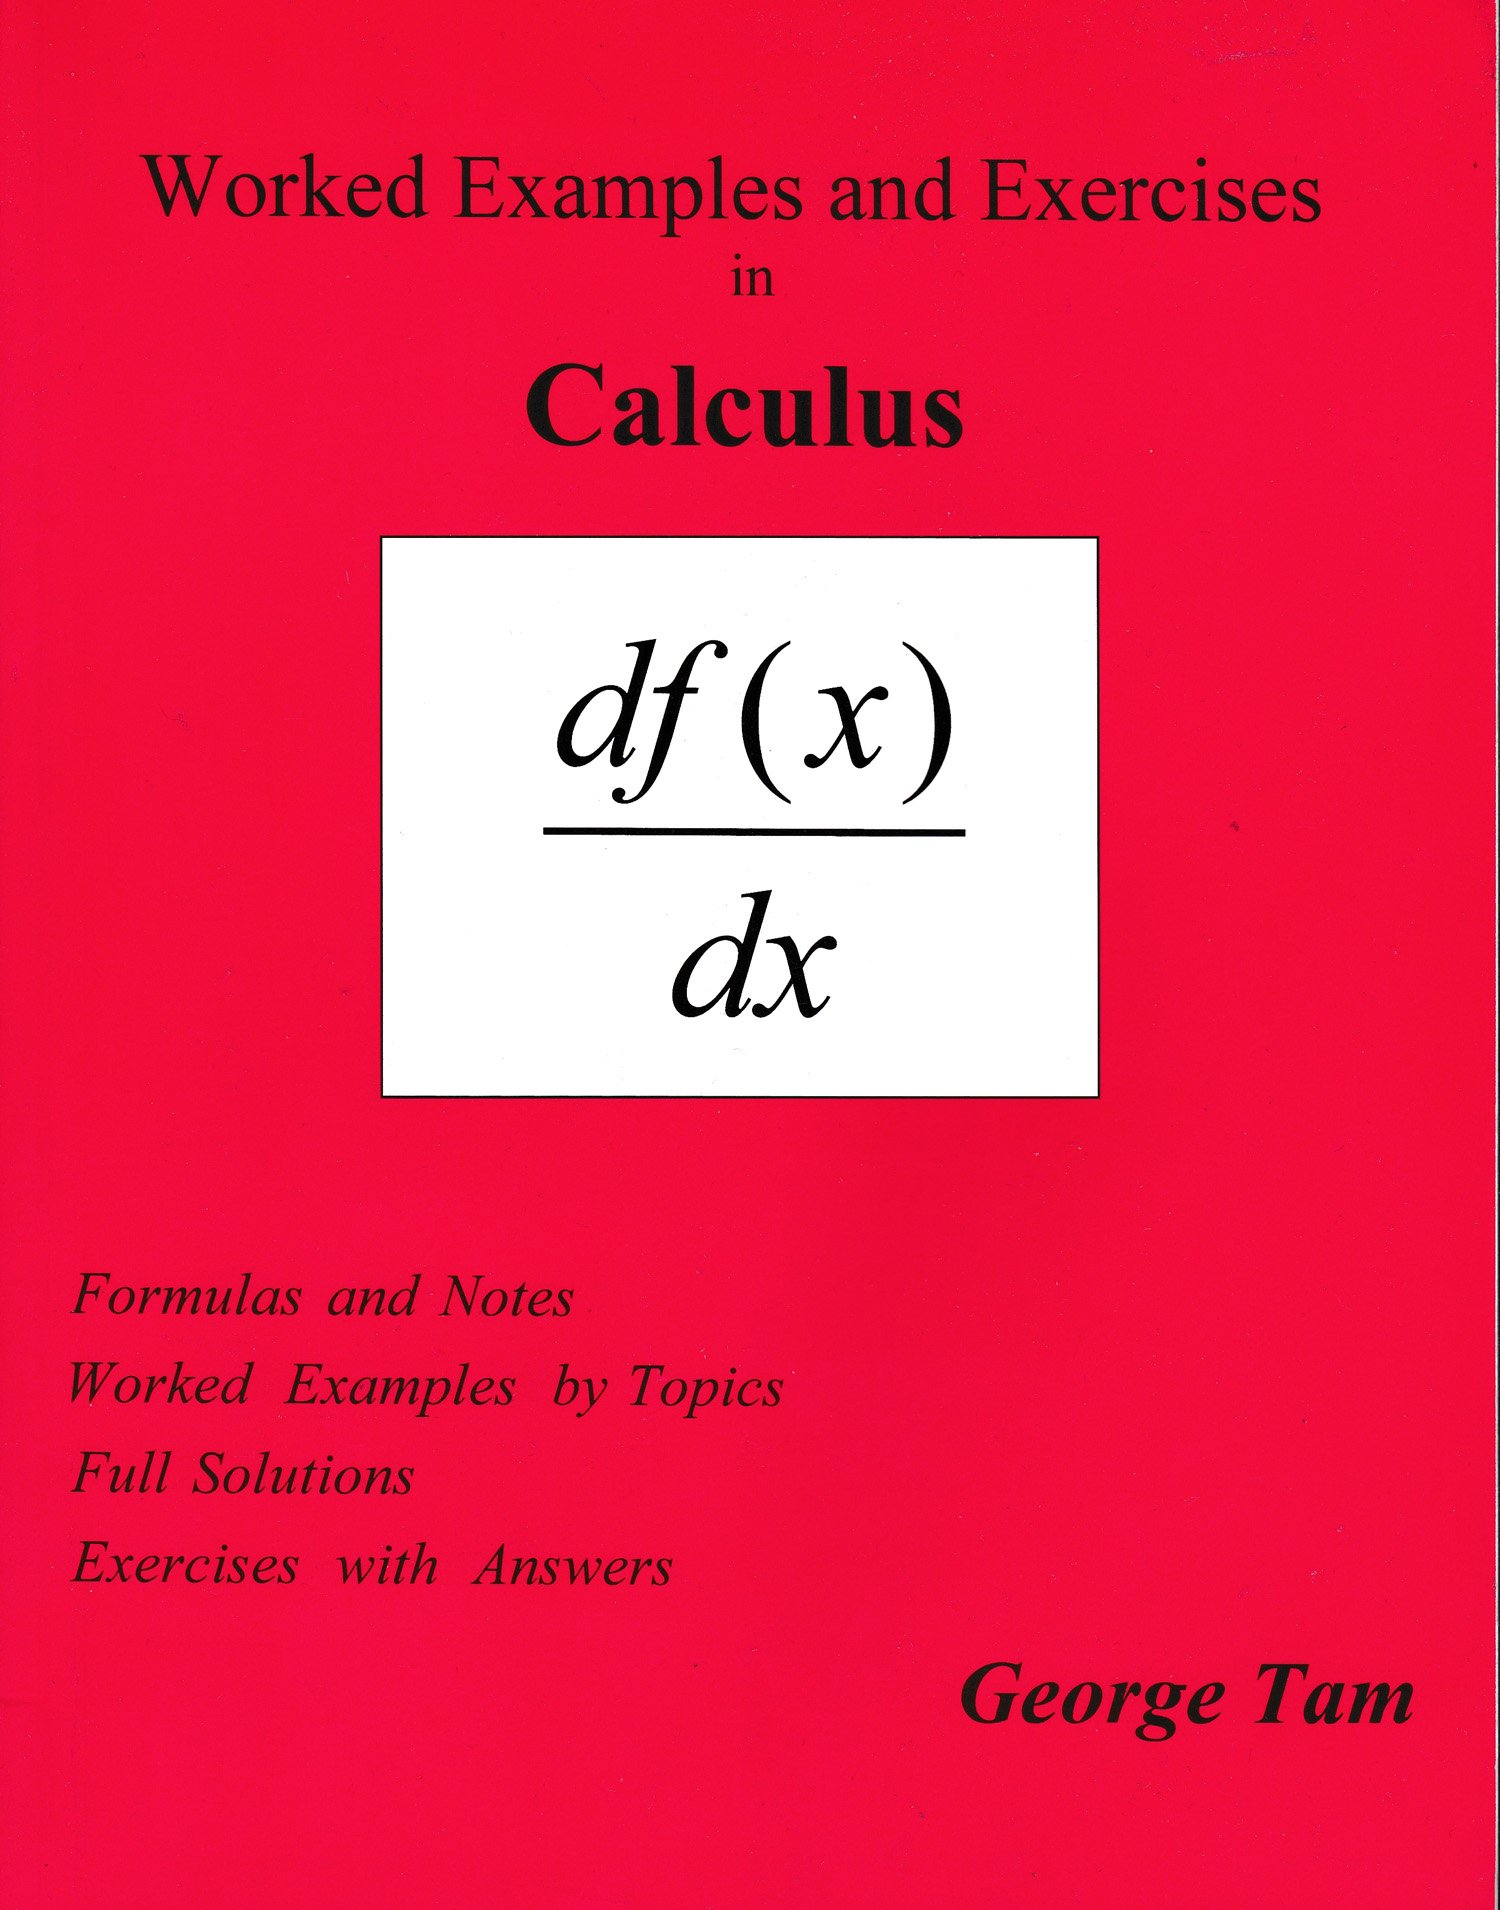 Work Examples and Exercises in Calculus